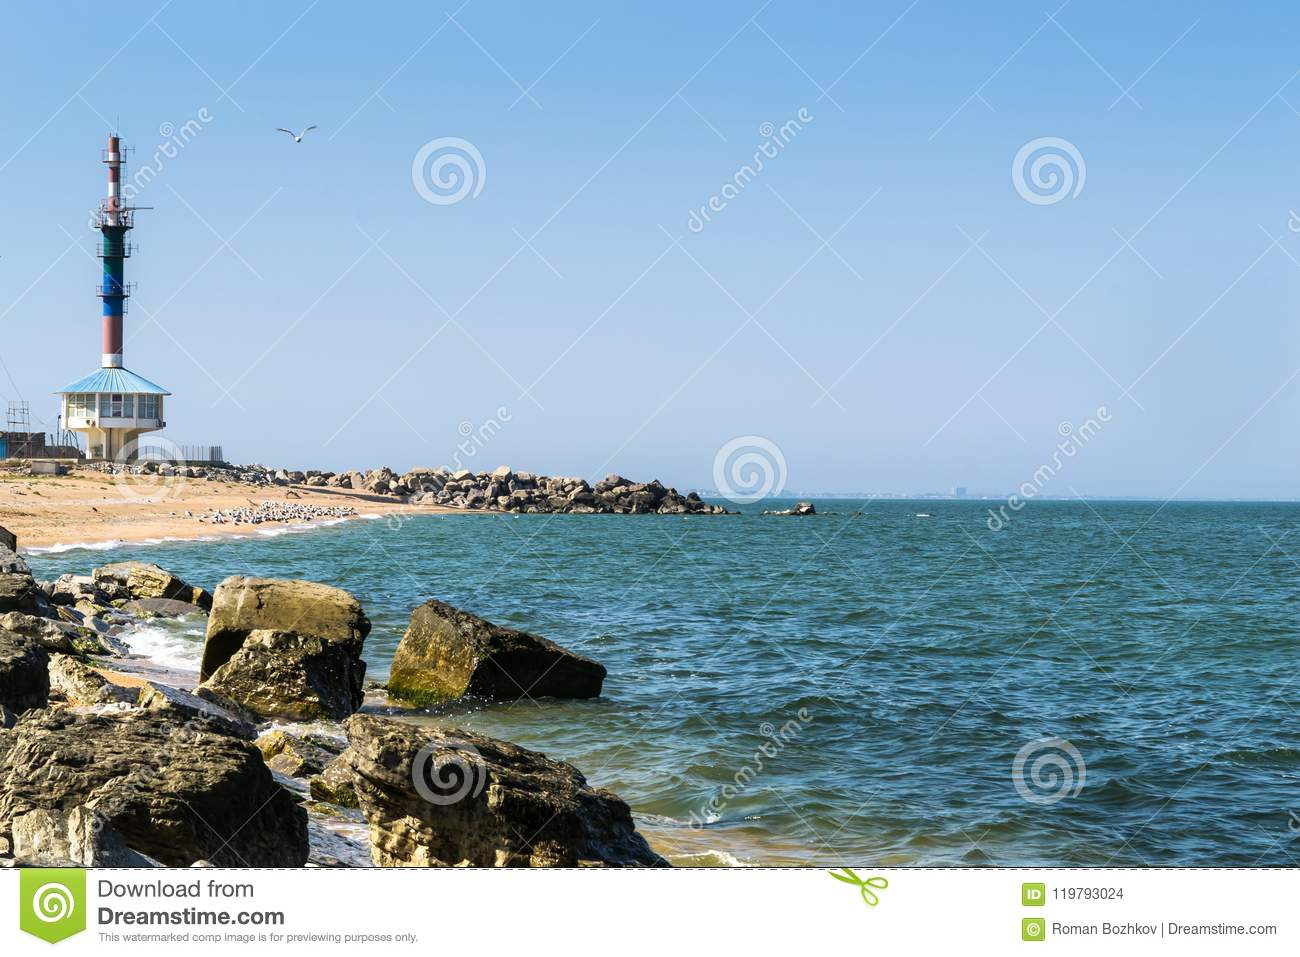 Lighthouse Background Black Sea Coast With A Lighthouse In The Background Stock Photo